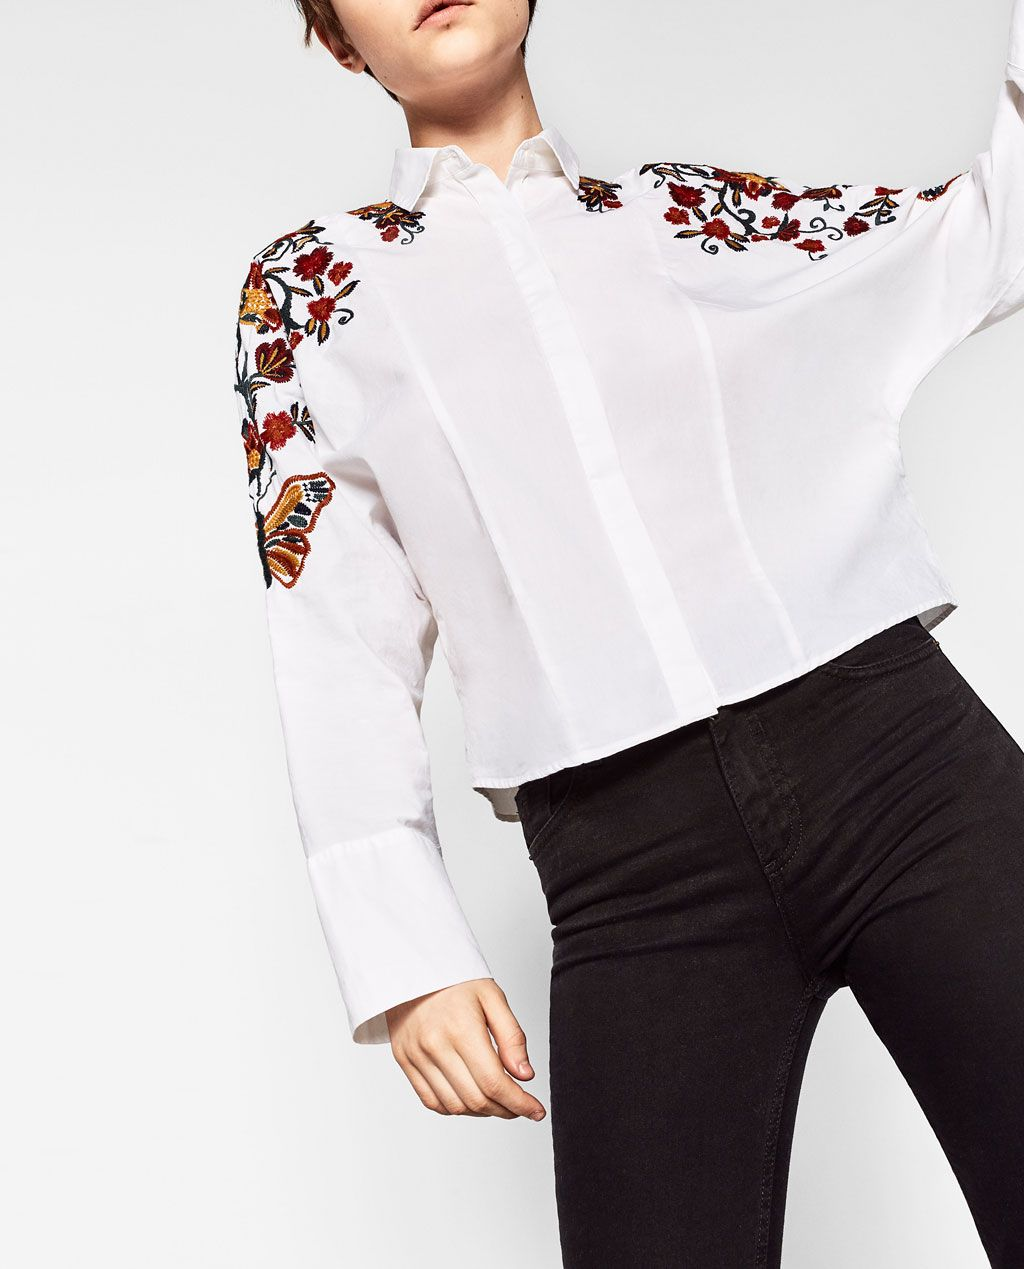 Women Long Sleeve White Cotton Country Flower Embroidered Shirts Vintage  Cardigan Korean Fashion Chemise Turn-